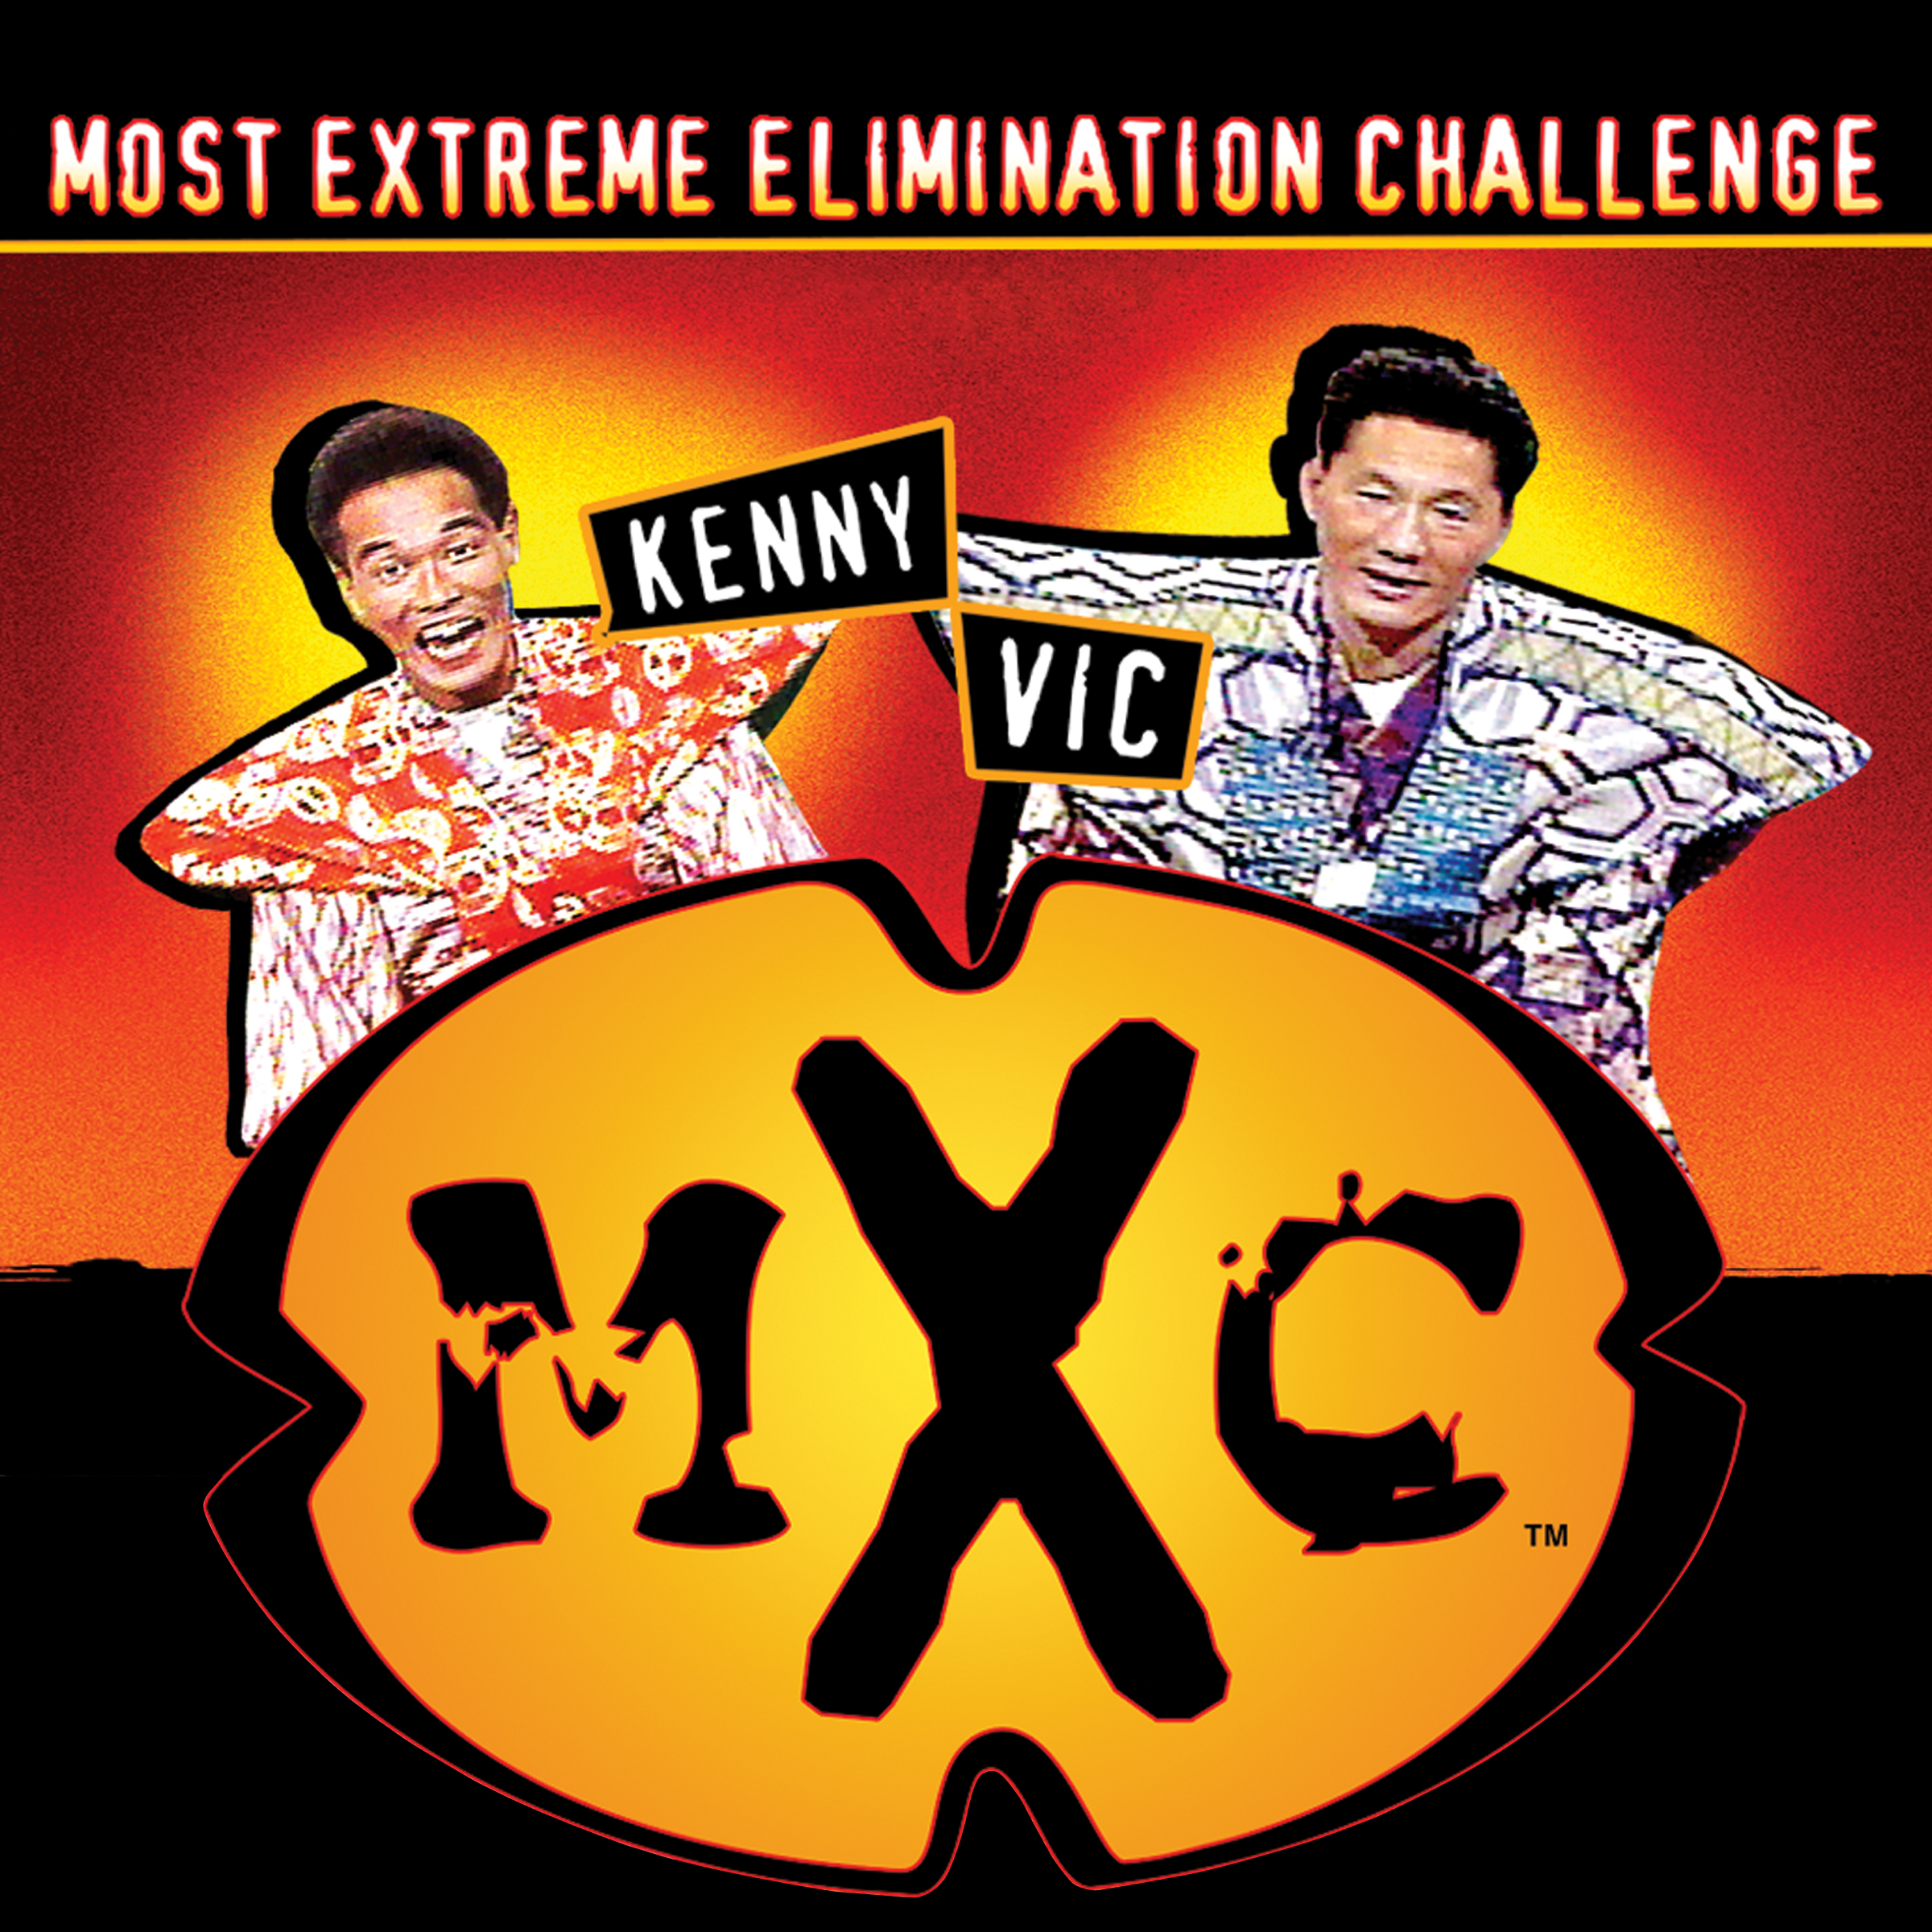 Most Extreme Elimination Challenge - New Video Digital - Cinedigm ...